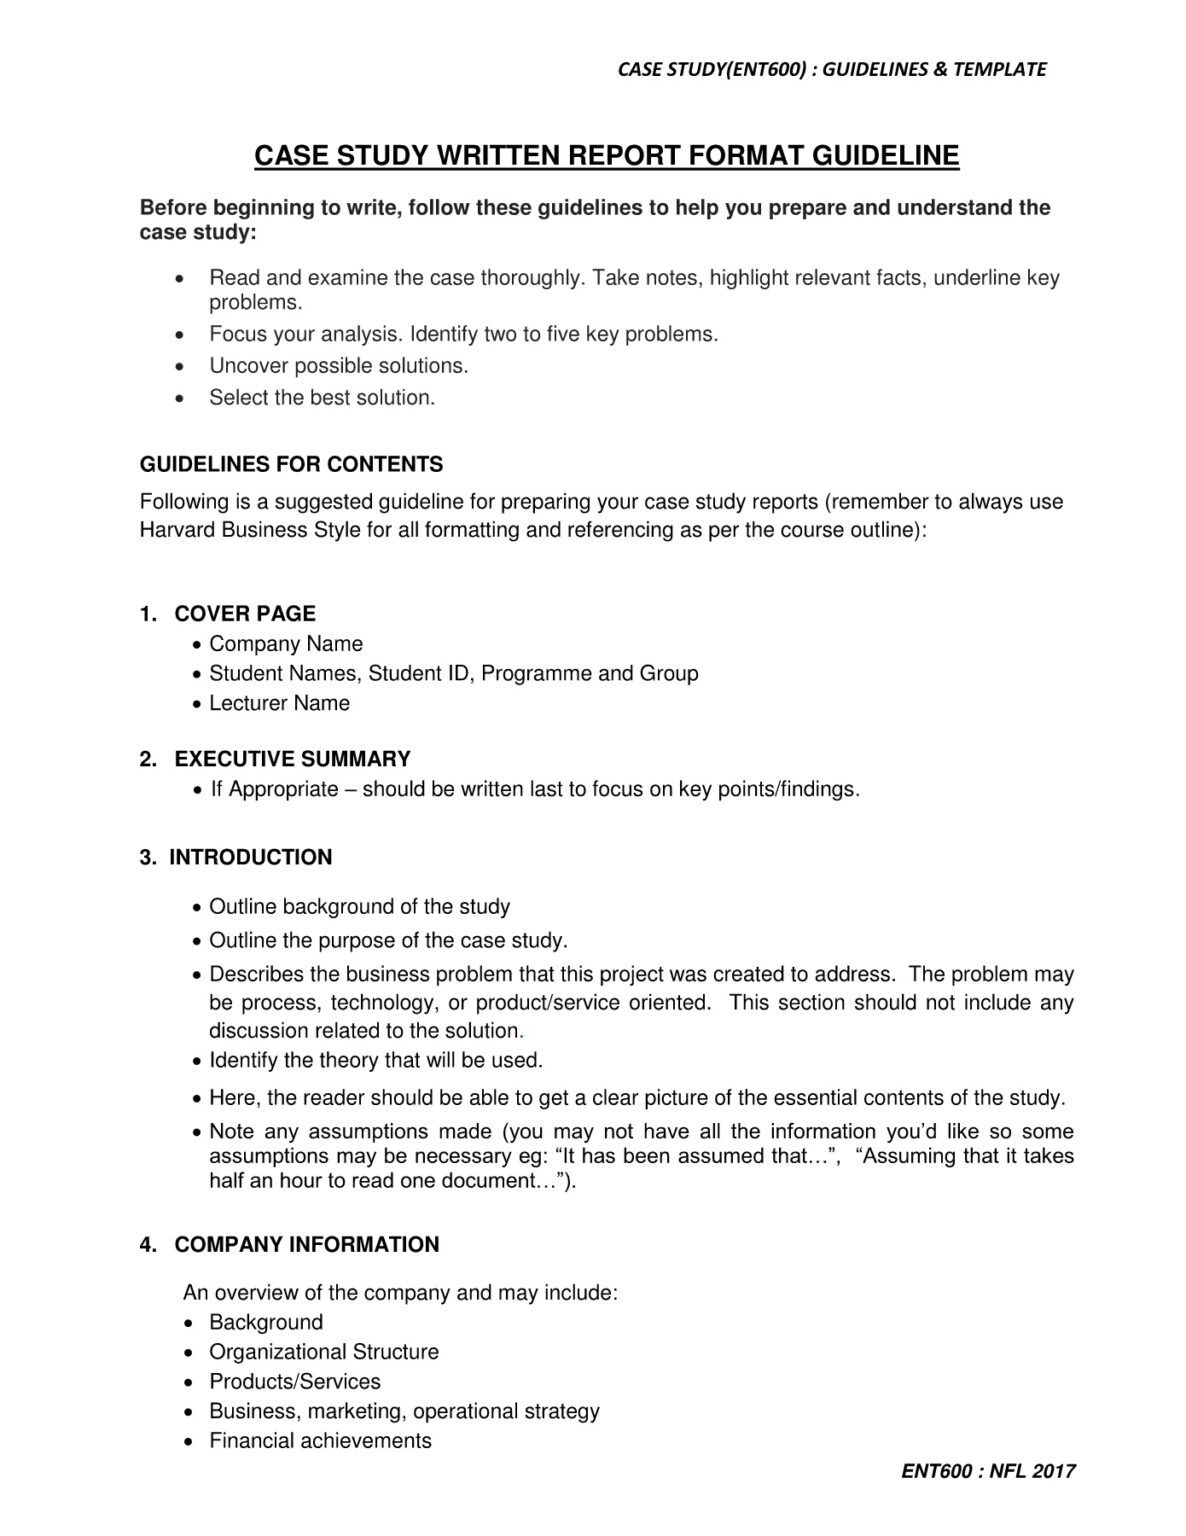 Ent600 Case Study Guidelines Amp Template Pages 1